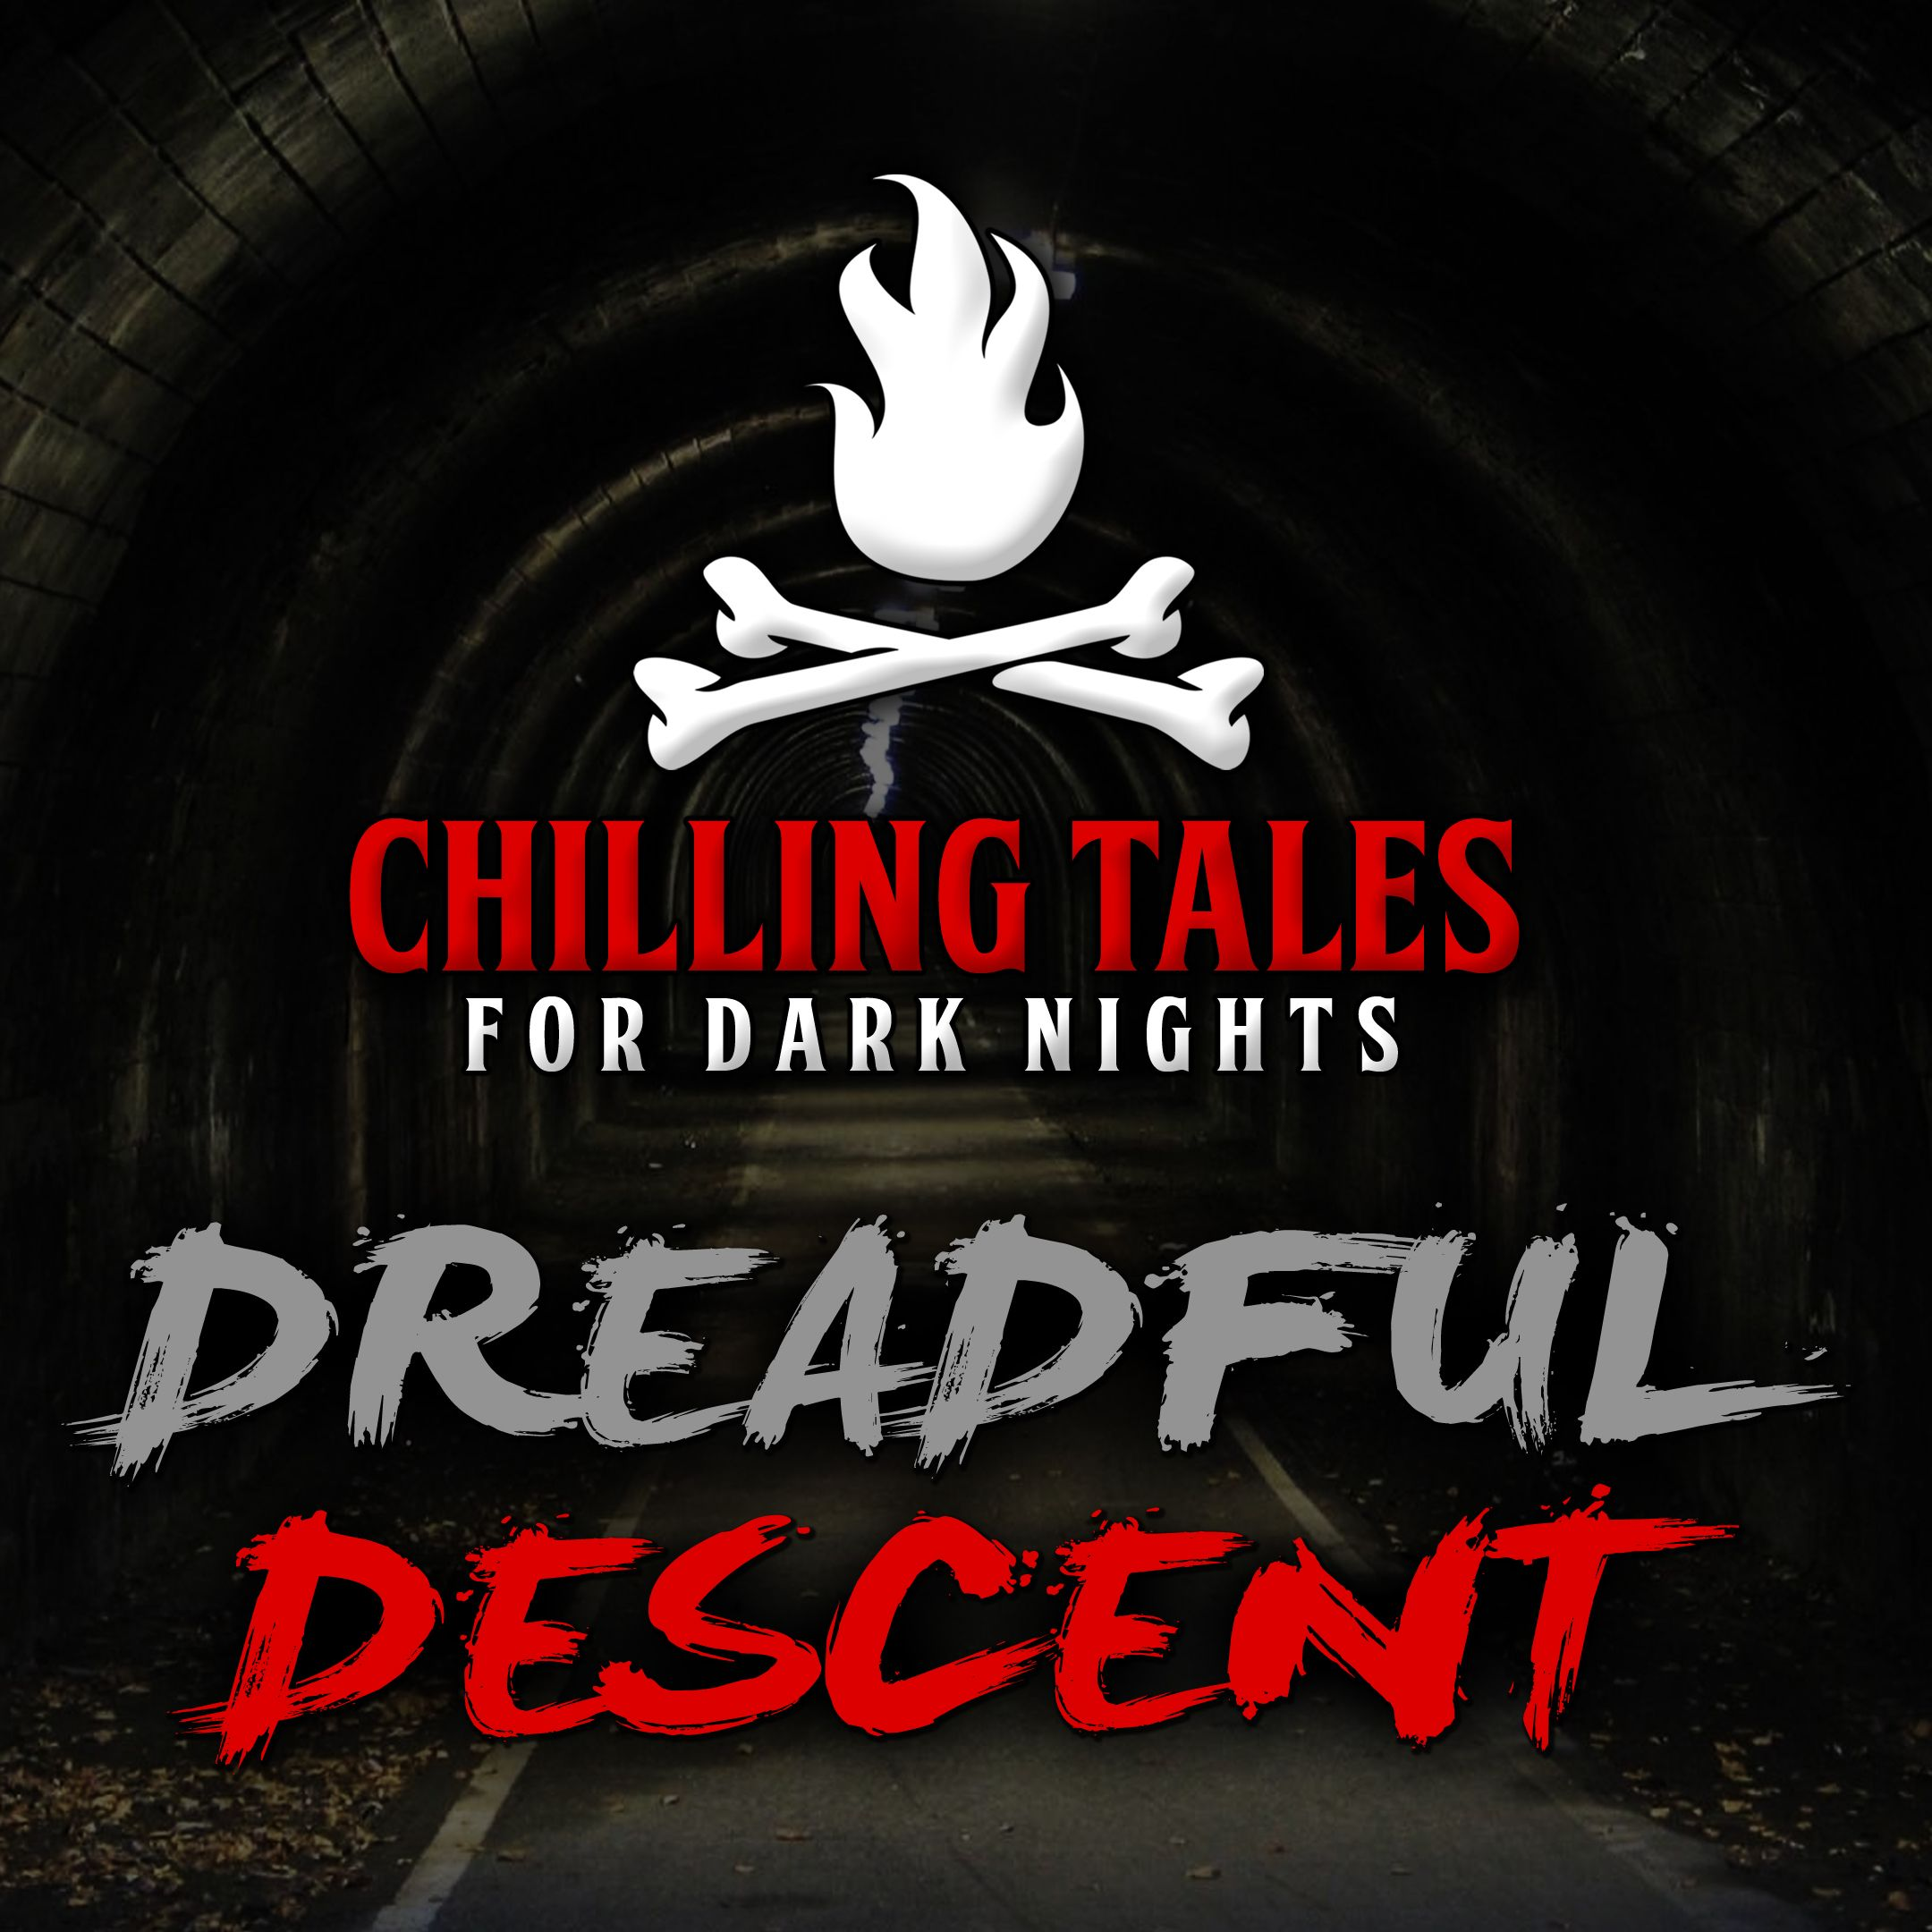 56: Dreadful Descent – Chilling Tales for Dark Nights